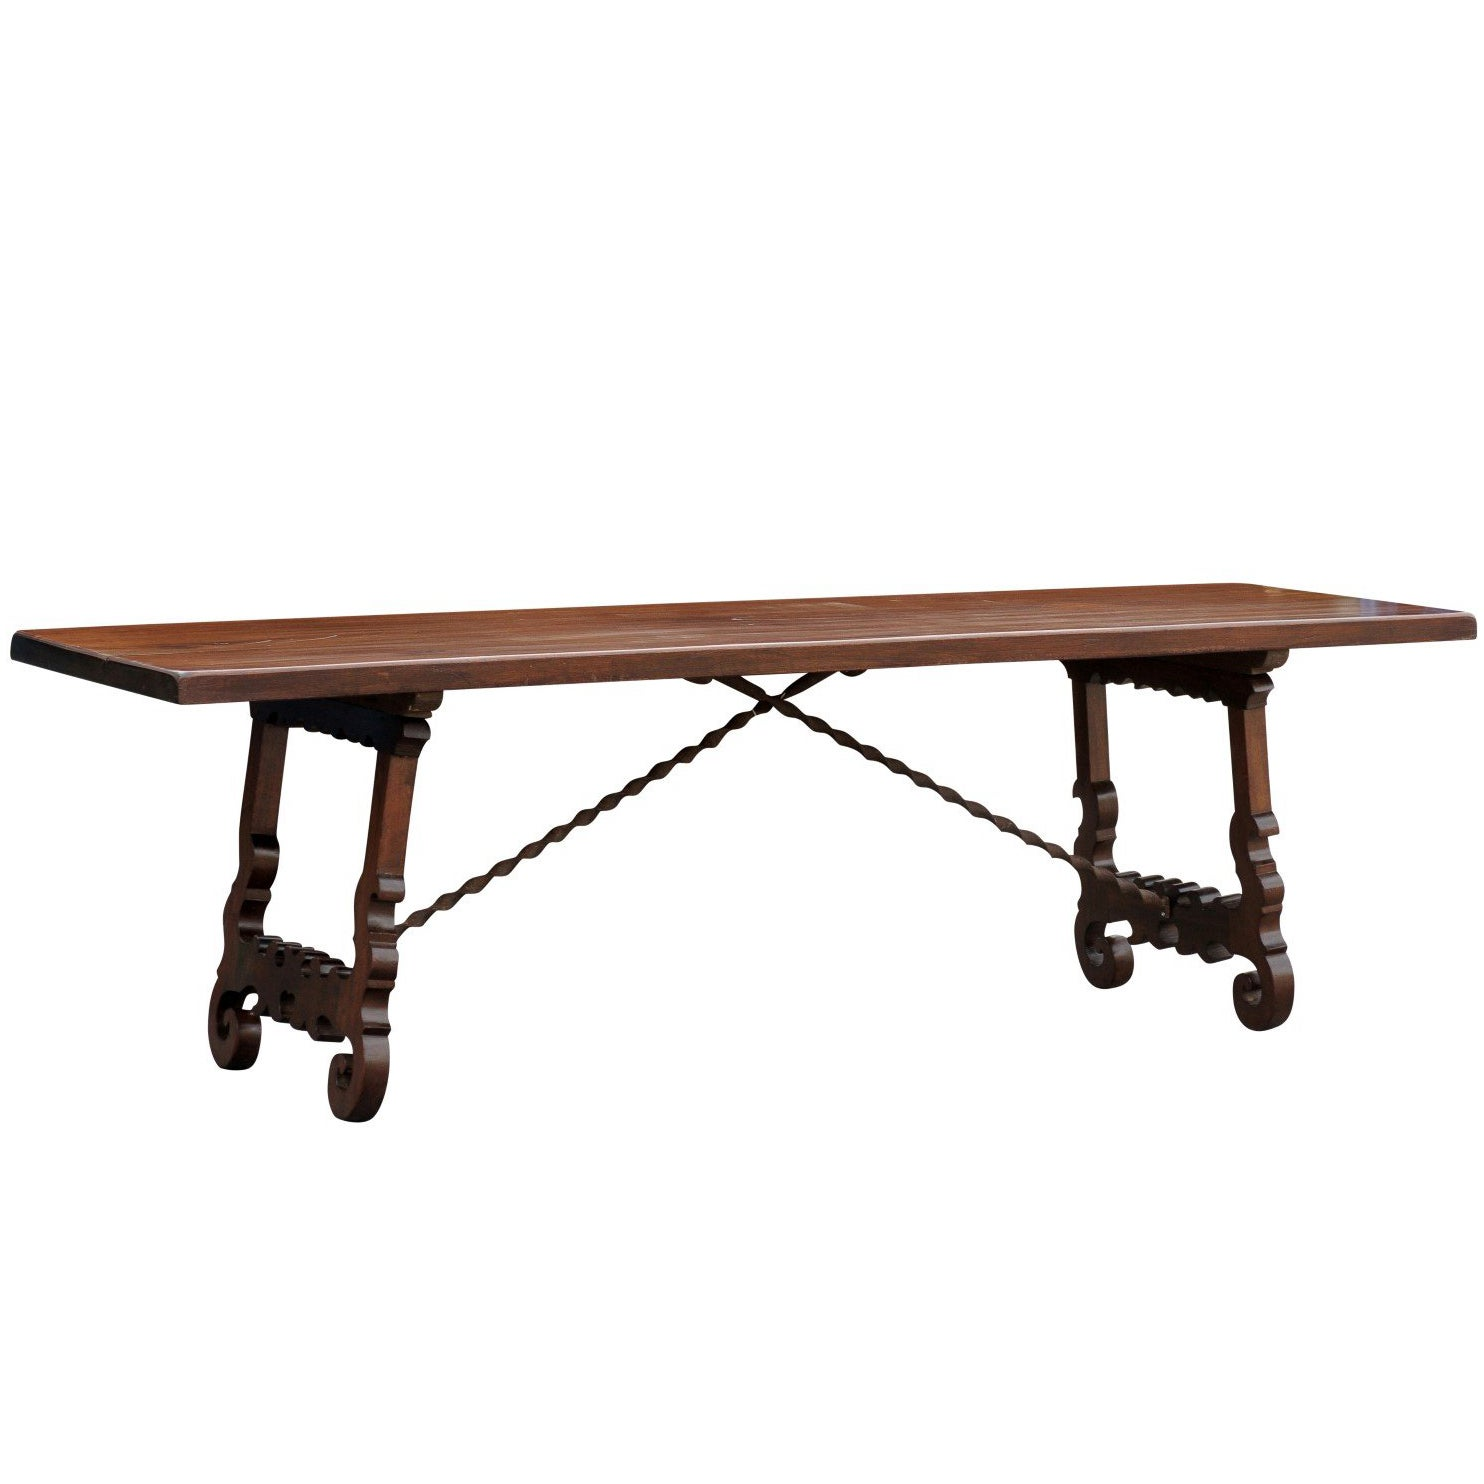 Long Wood Desk 19th Century Italian Baroque Style Long Wooden Trestle Table With Iron Stretcher